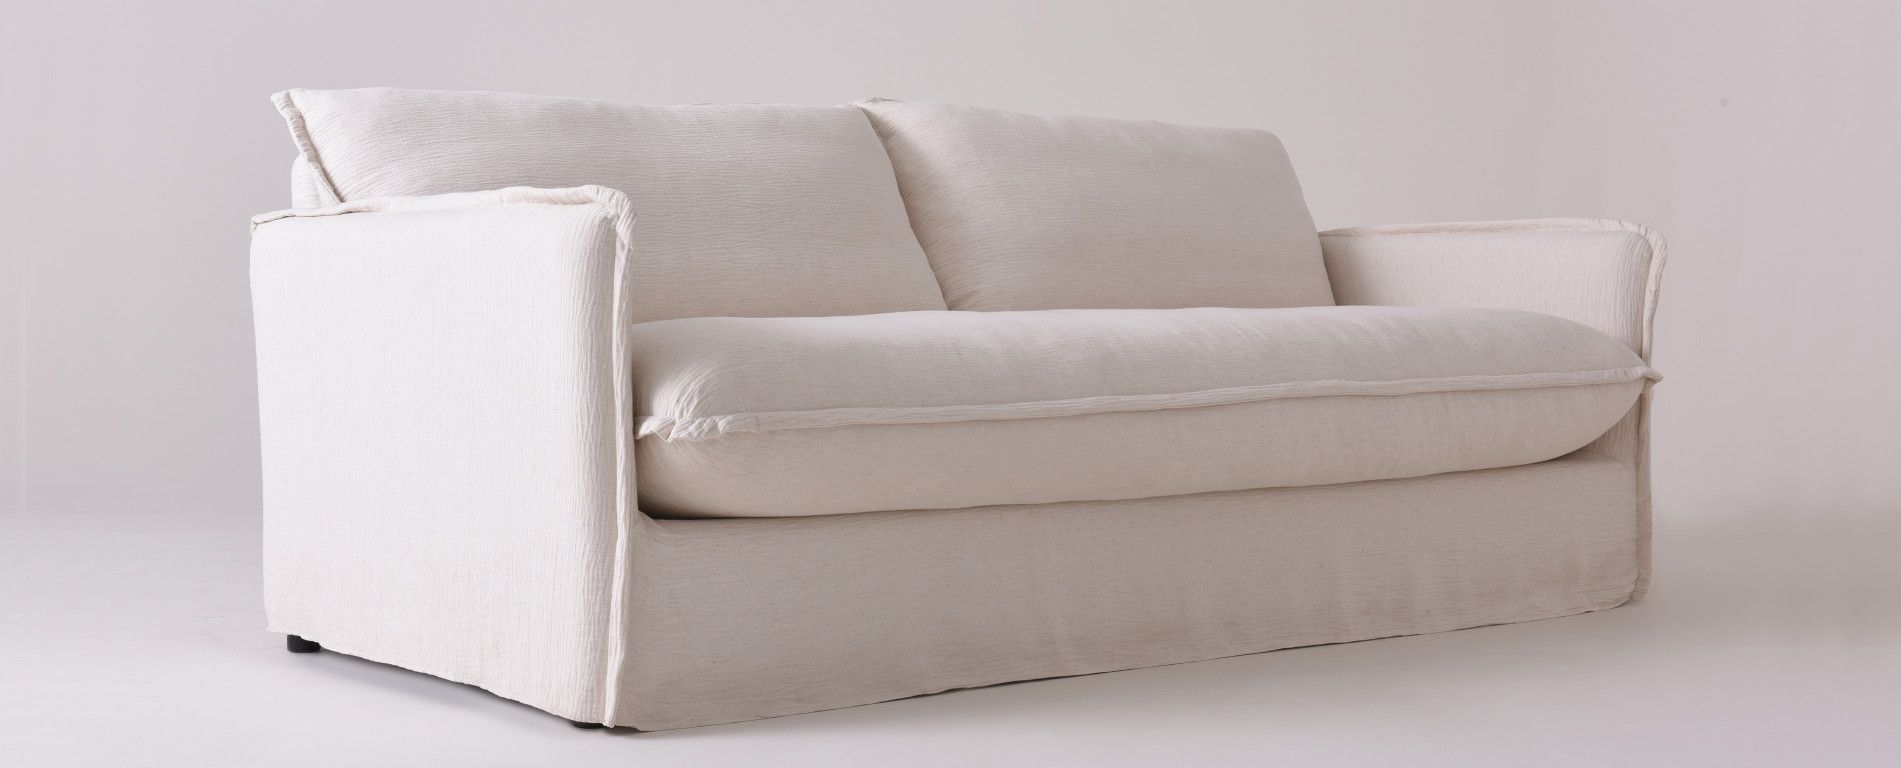 Neva Sofa In 2019 Furniture Sofa Sleeper Sofa Sofa